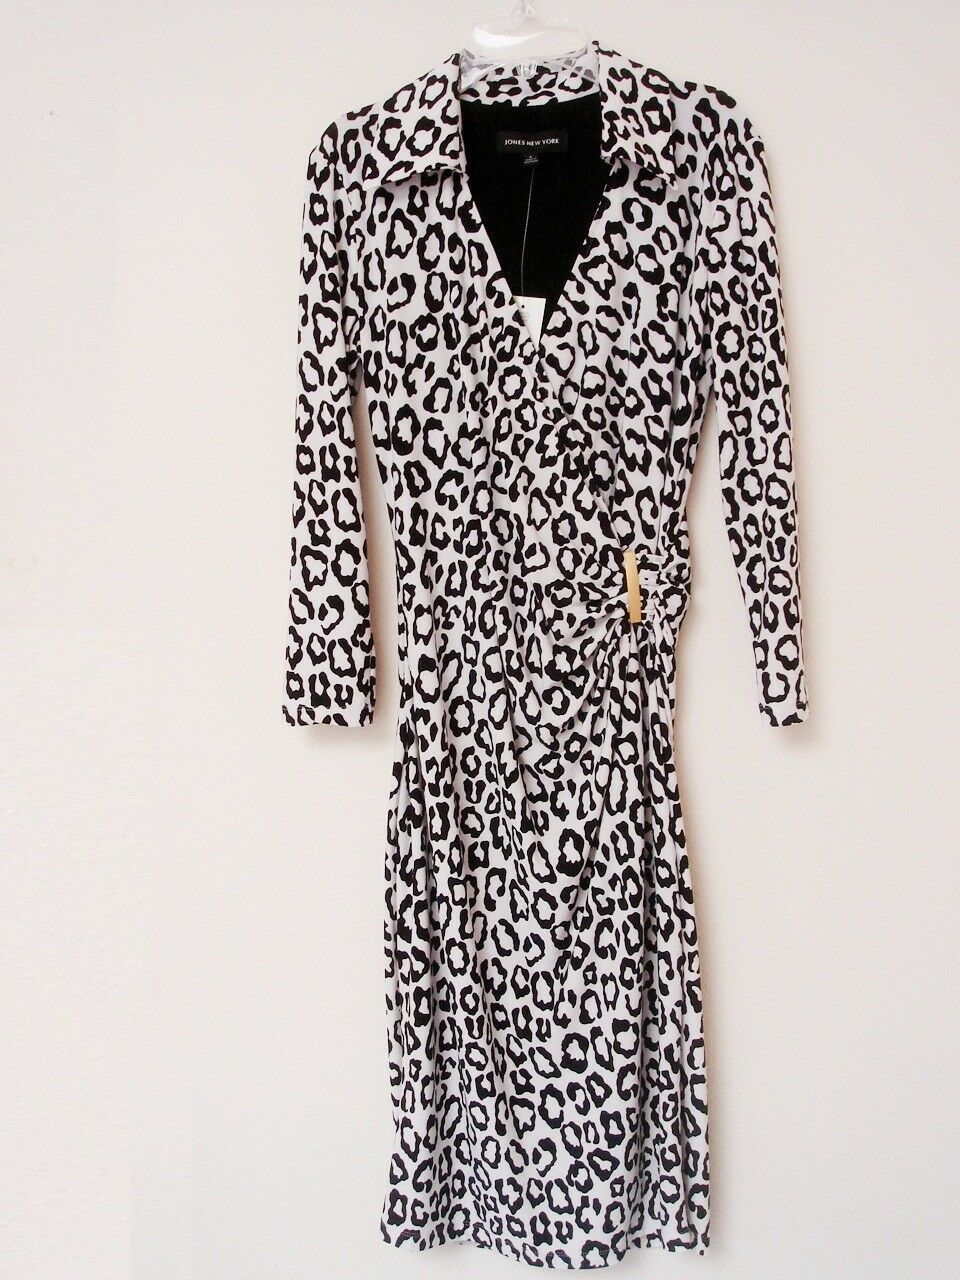 Jones New York Faux Wrap dress long sleeve damen 4 schwarz Weiß NWT